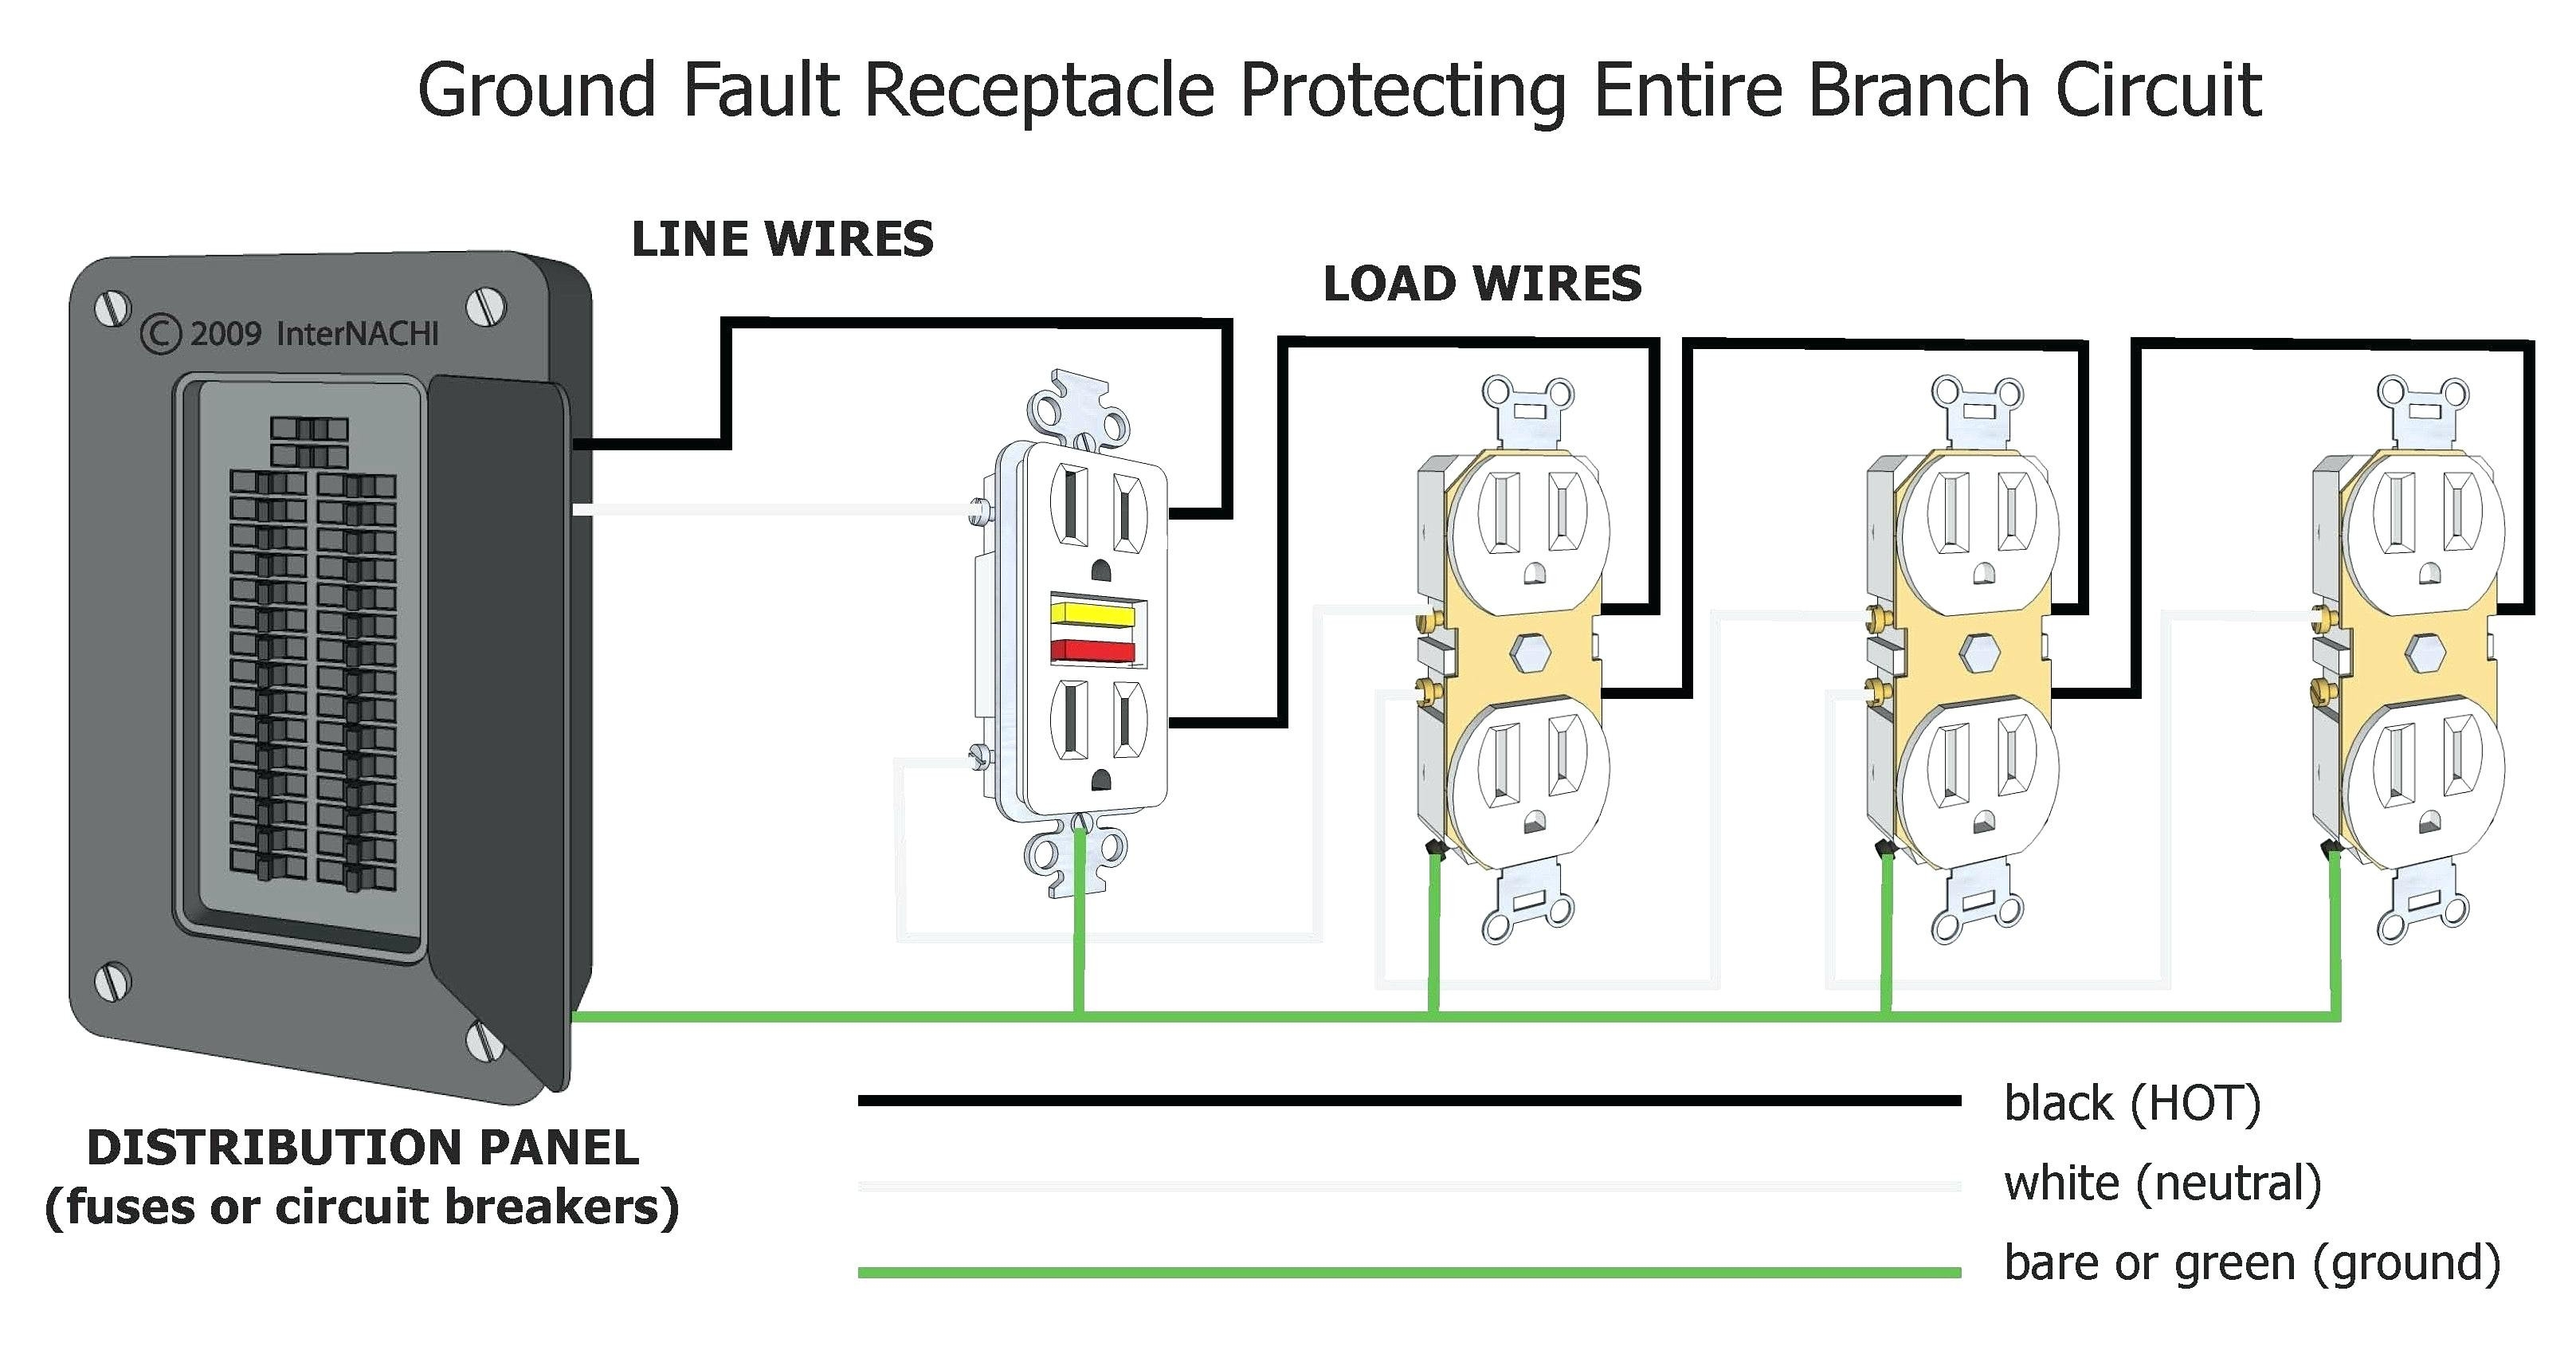 Square D Breaker Box Wiring Diagram Homeline Breaker Box Wiring Diagram Collection Wiring Diagram For Amp Breaker Box Inspirationa Homeline Download Wiring Diagram C on Square D Breaker Box Wiring Diagram